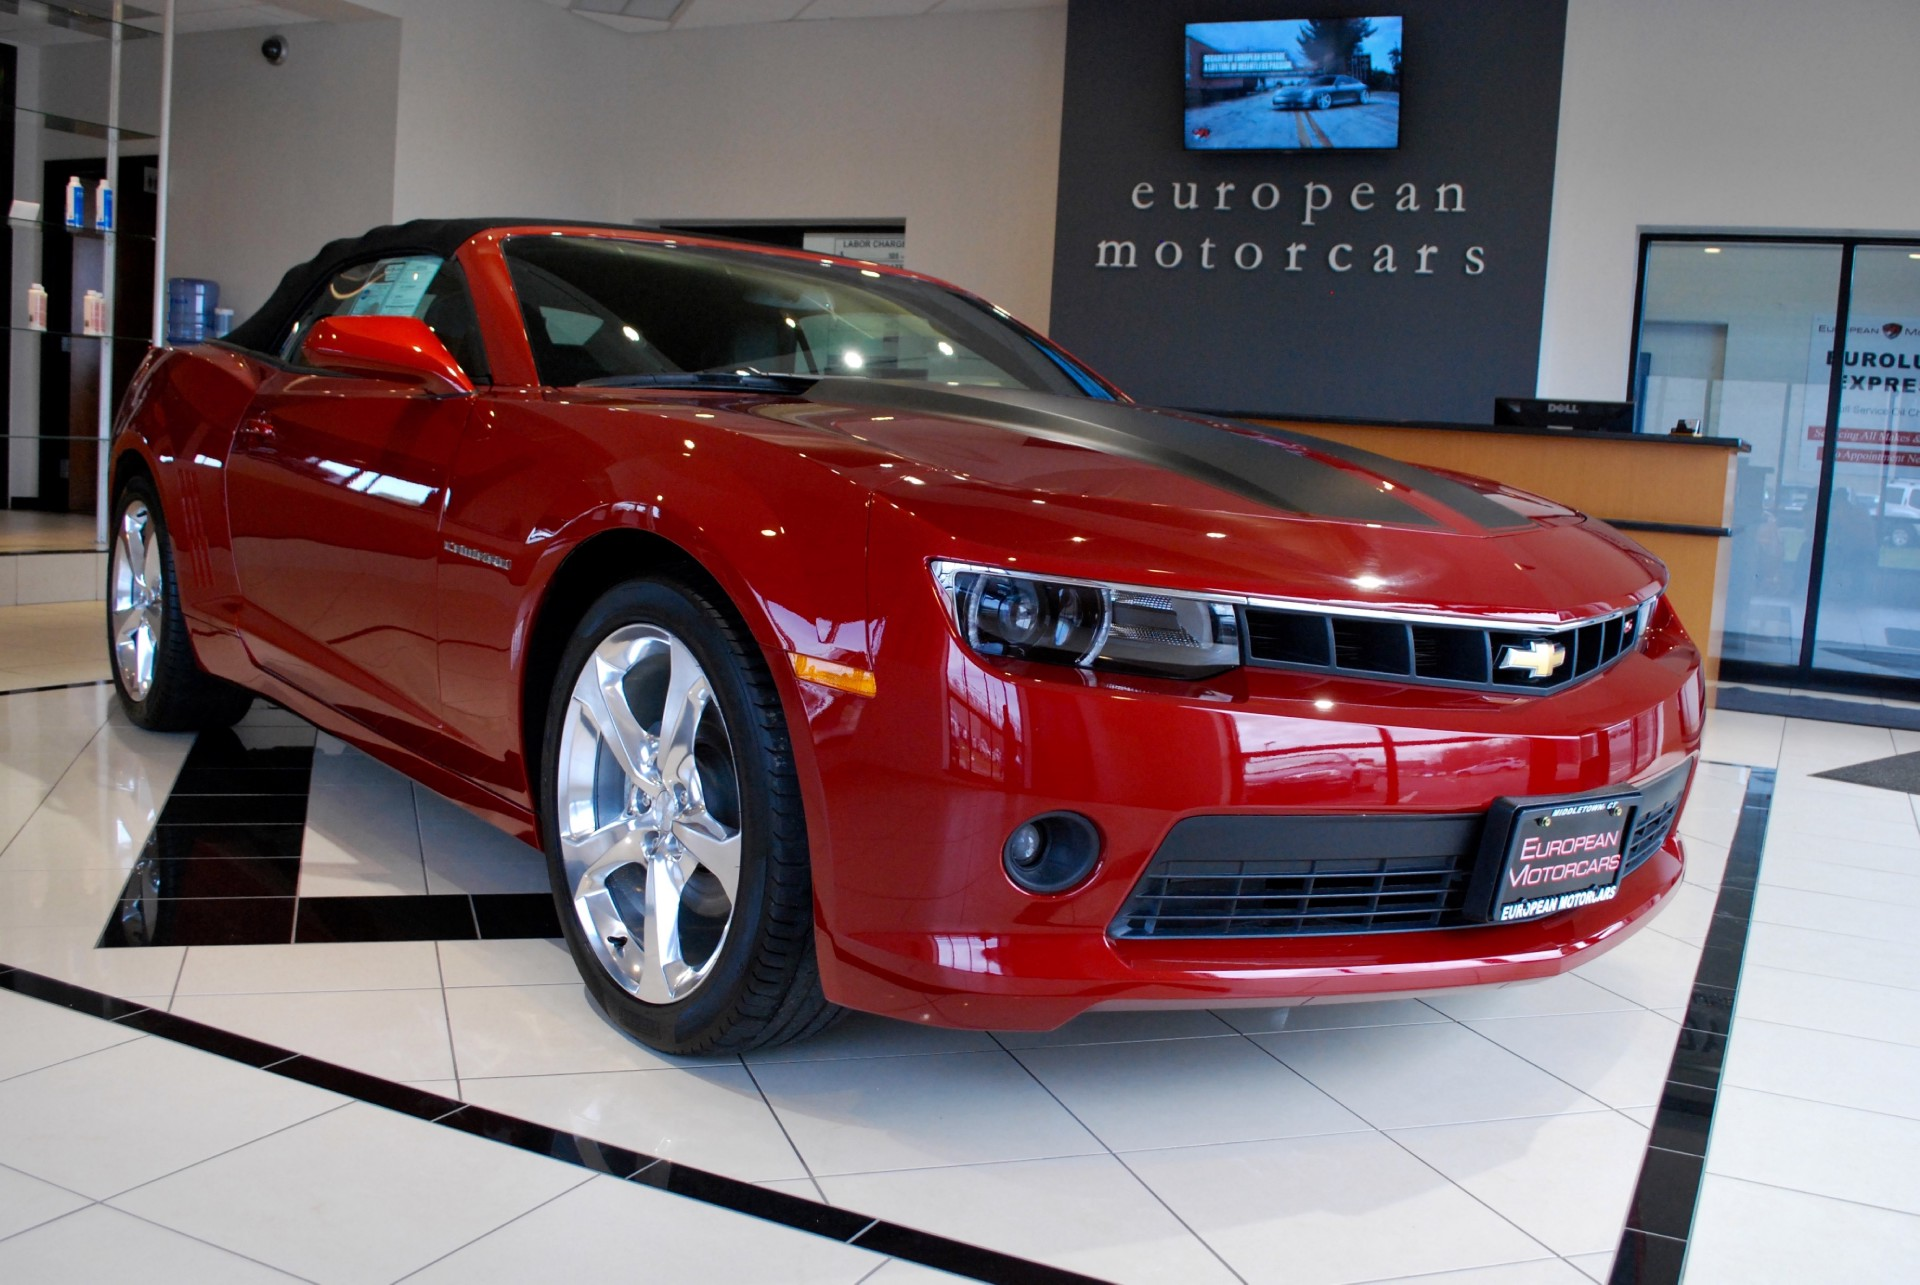 Camaro Rs 2015 >> 2015 Chevrolet Camaro Rs Convertible Lt For Sale Near